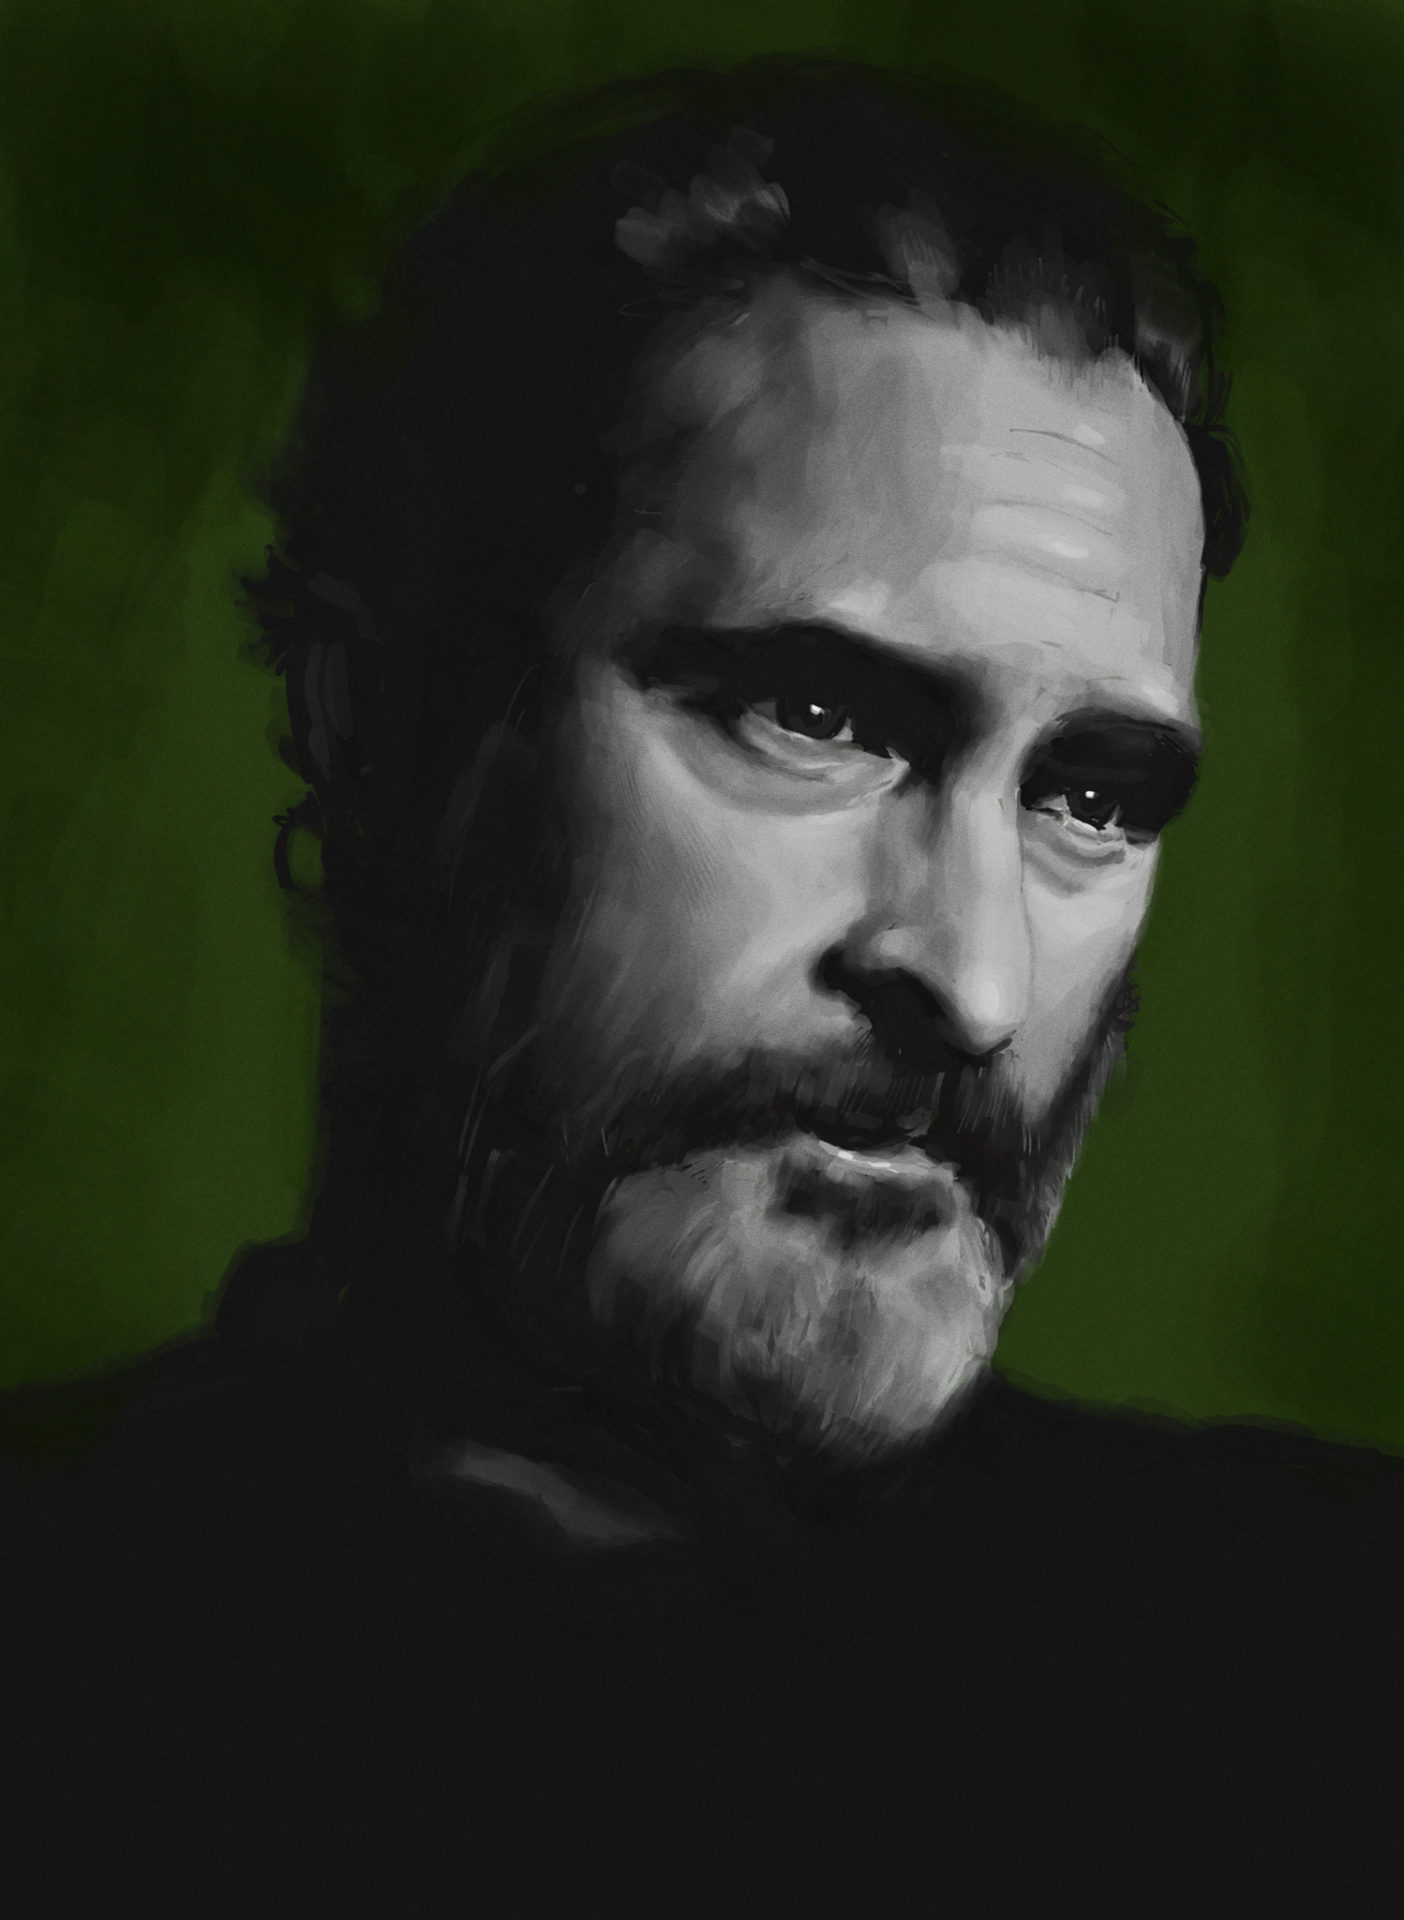 Joaquin Phoenix portrait study from photo reference.